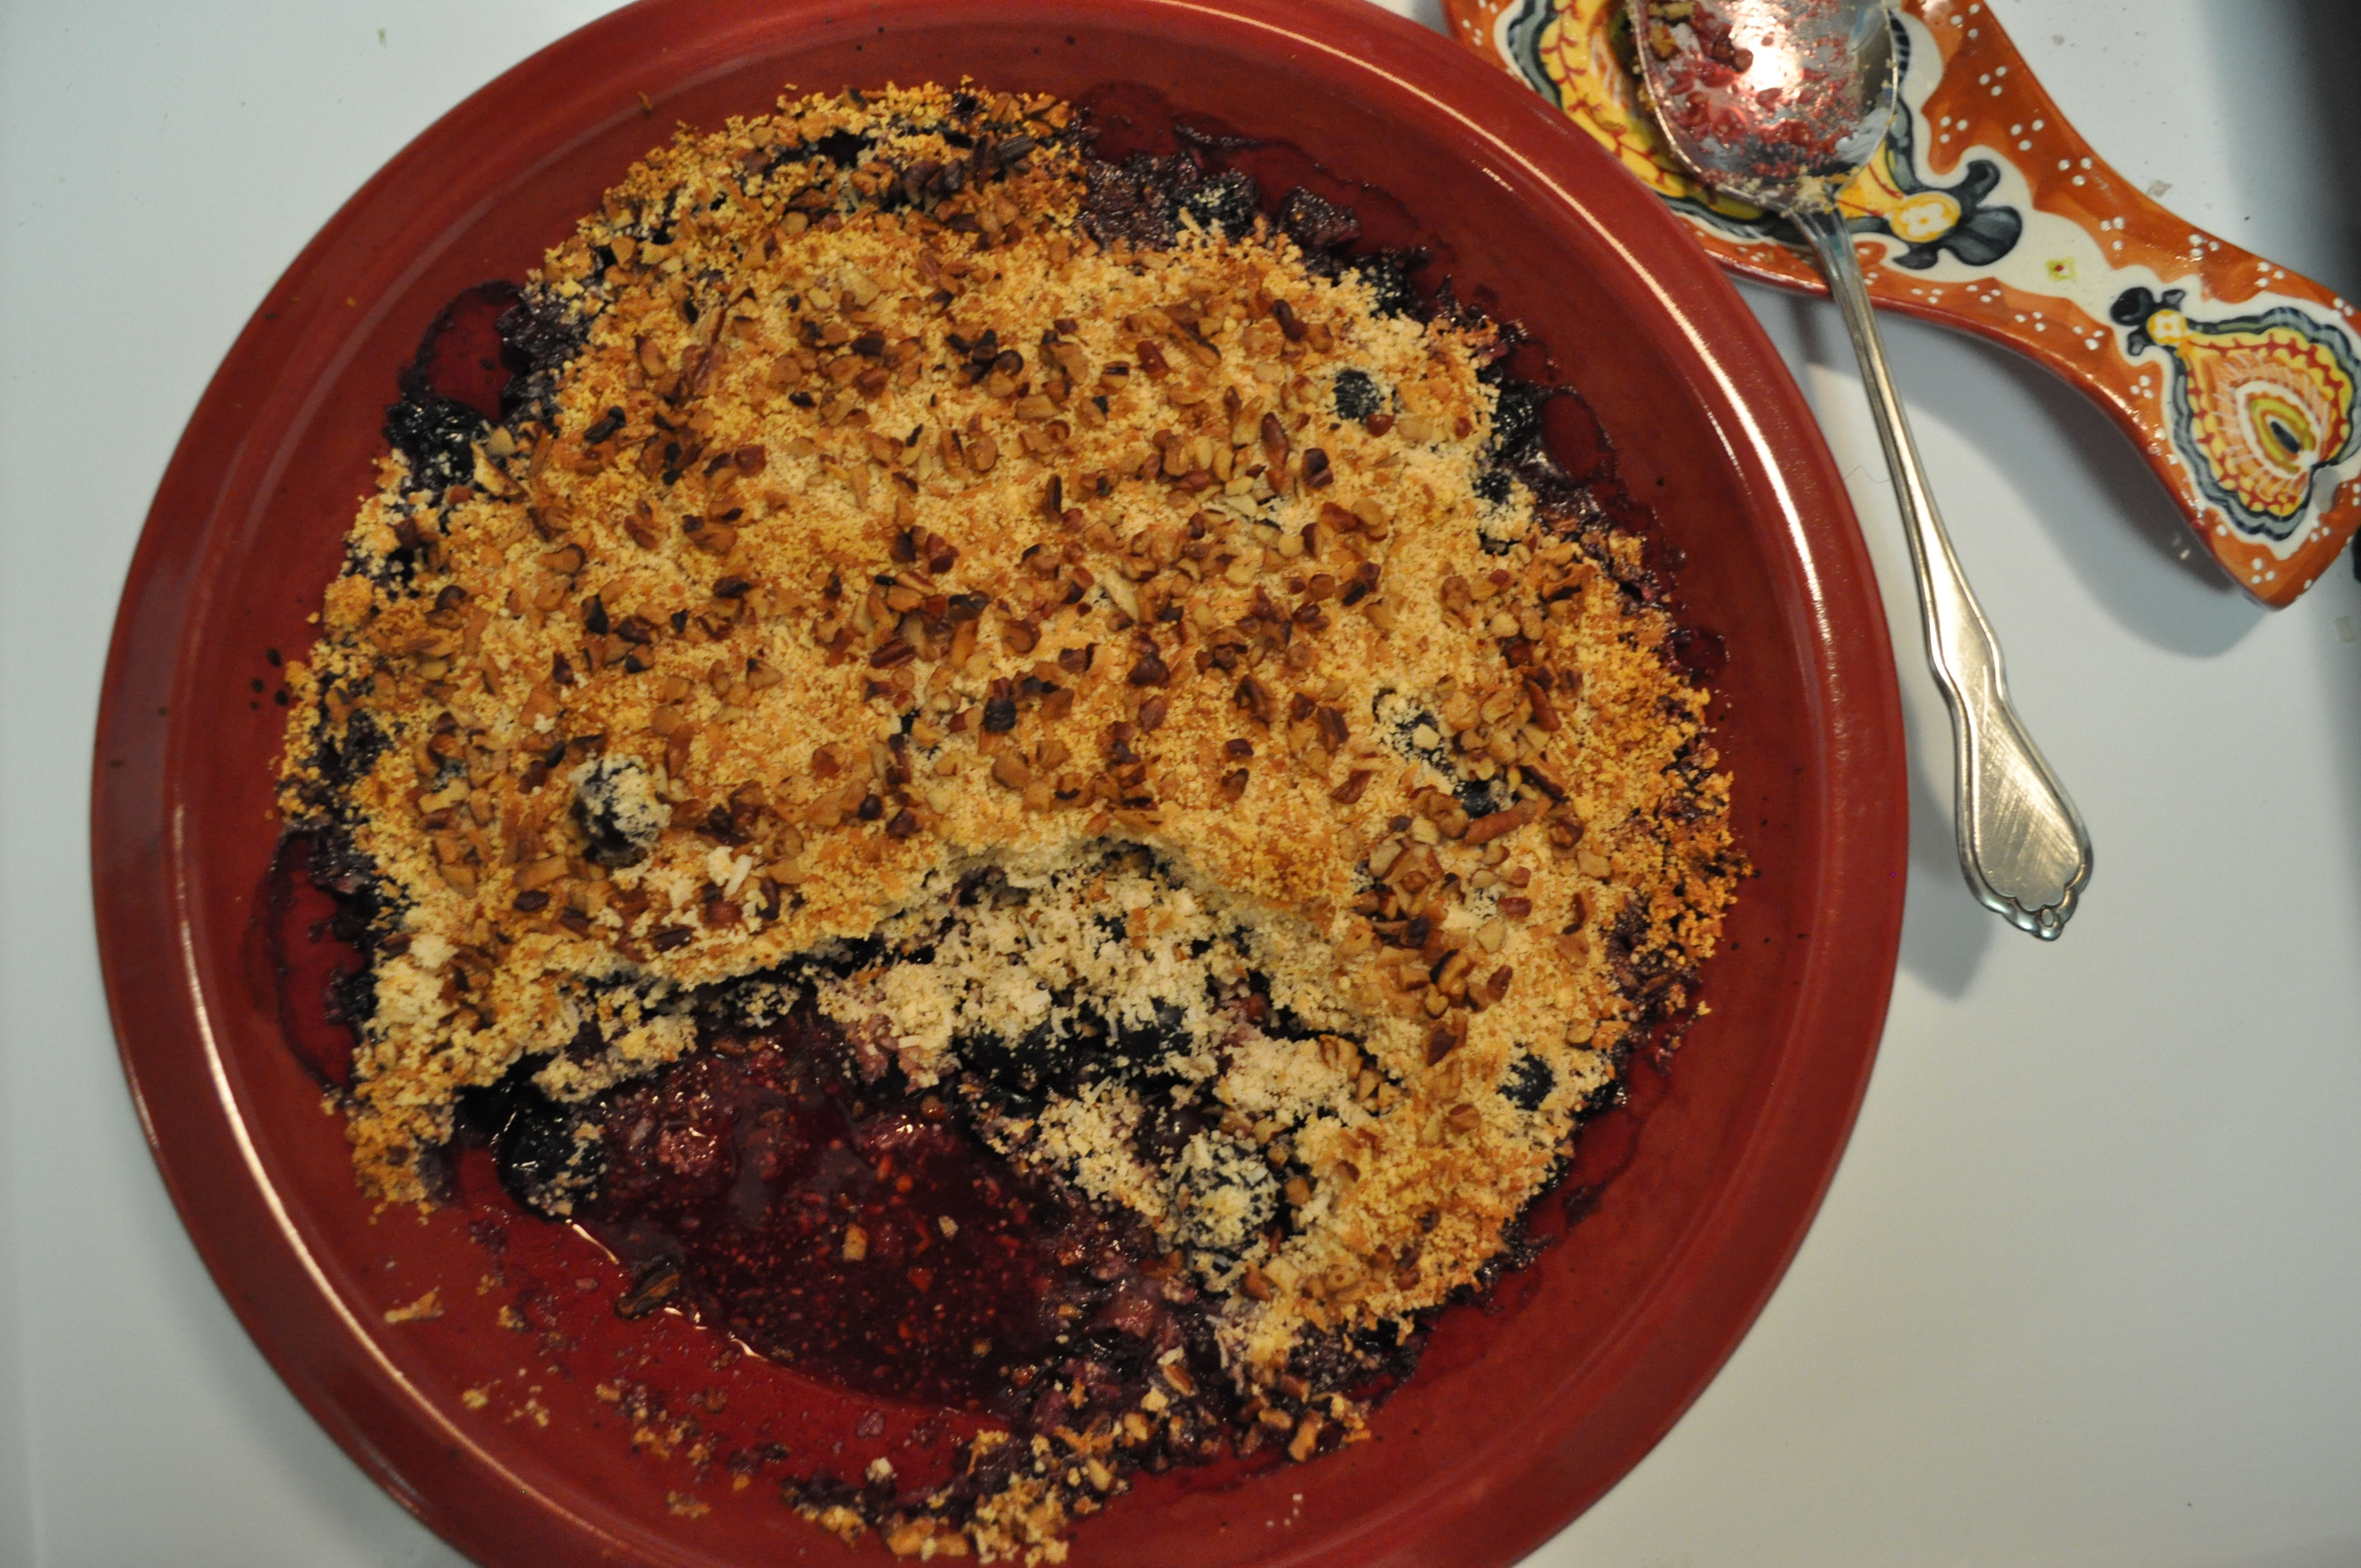 overhead view of a red casserole dish filled with baked blueberry coconut crumble